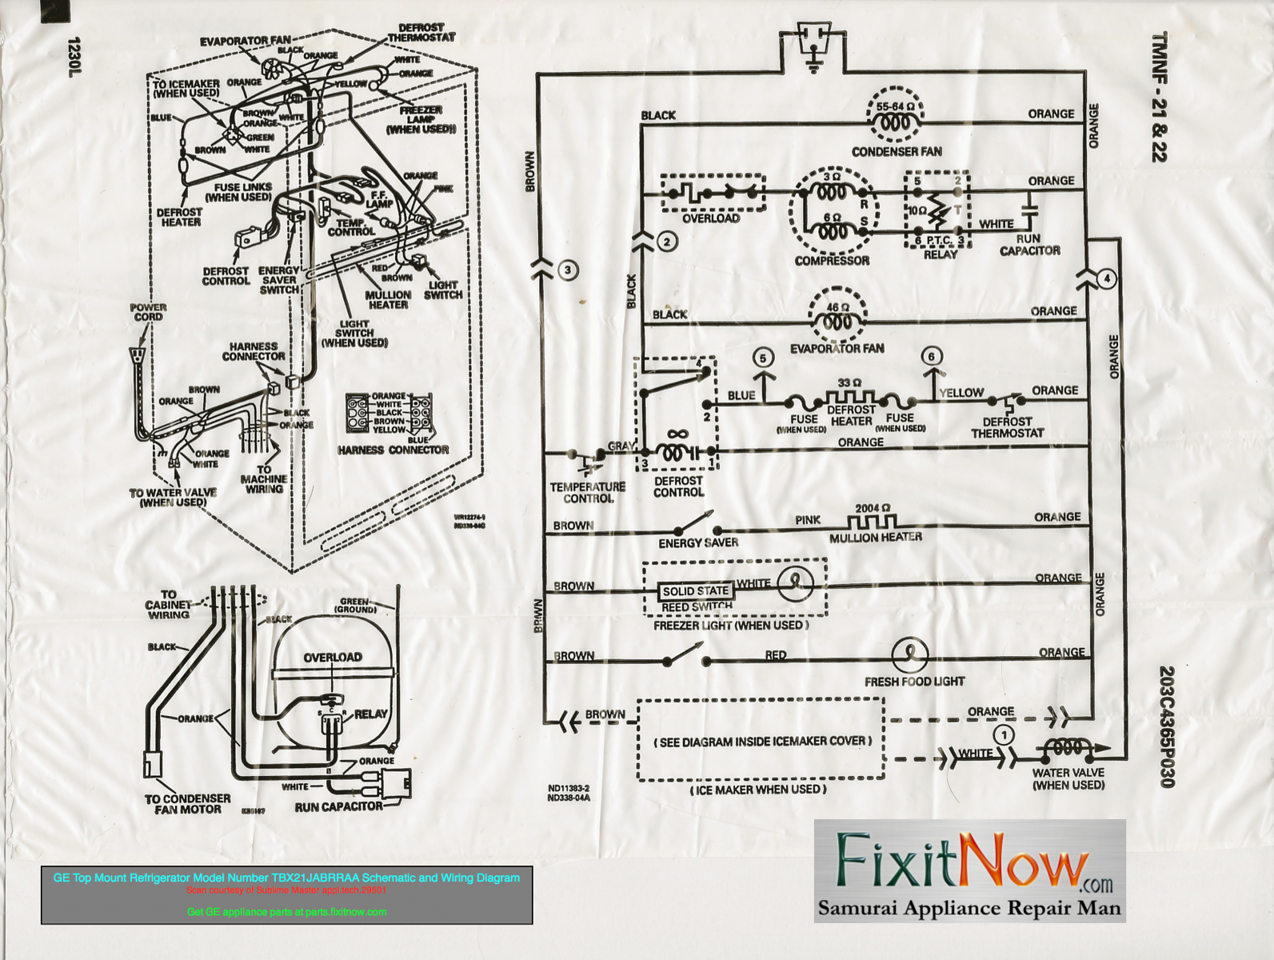 4904374061_e8eb3df6c6_o X2 wiring diagrams and schematics appliantology wiring schematics at n-0.co